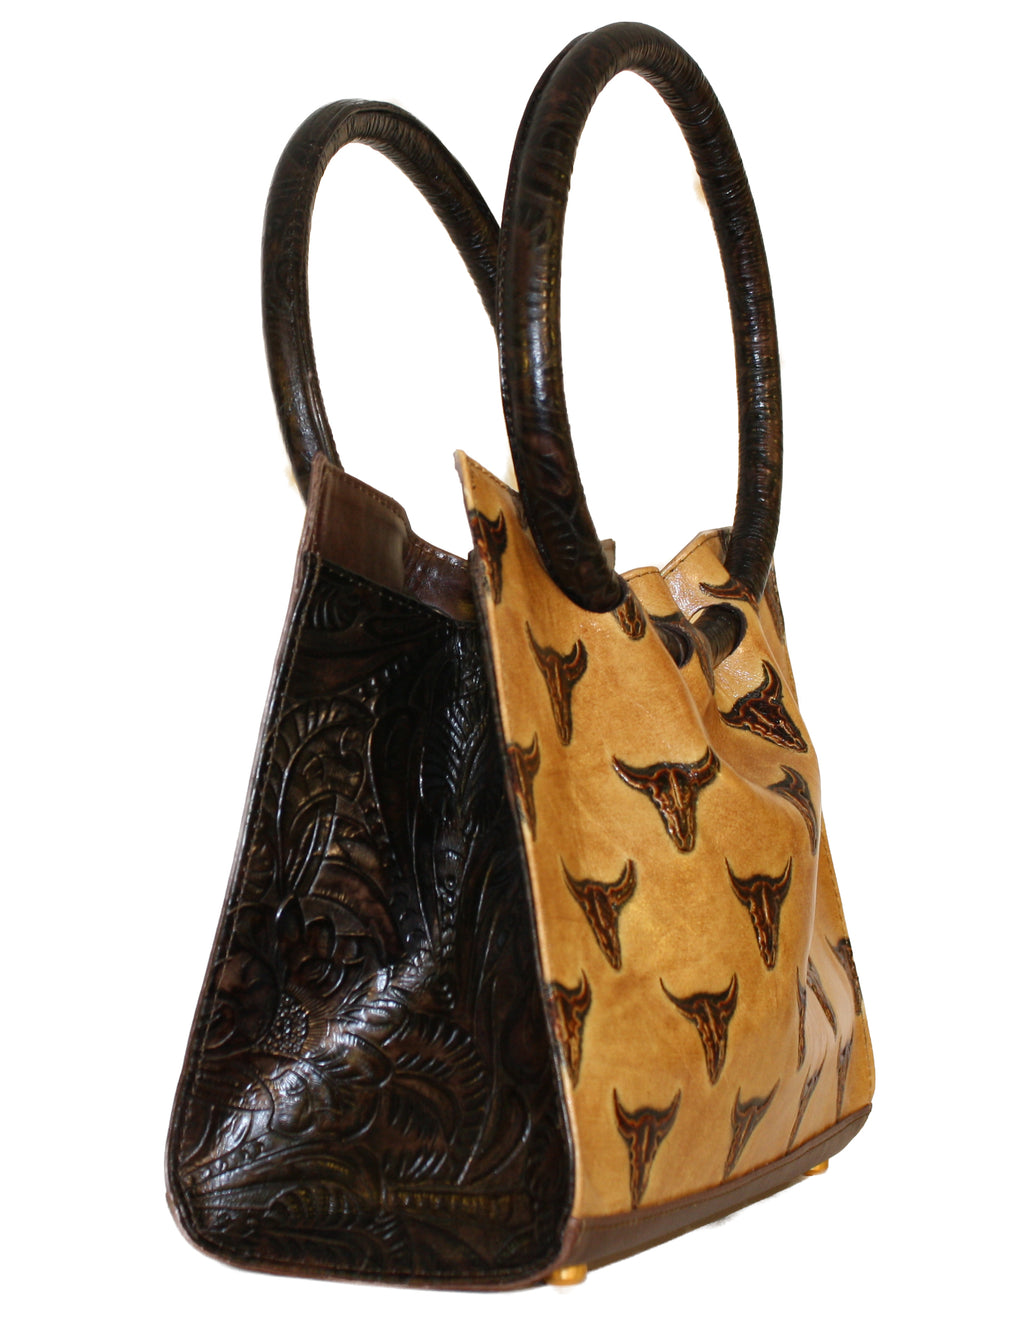 Round handle, Embossed longhorn handbag round handle, Embossed leather handbags, leather bags, western handbags, rodeo bags, longhorn bags